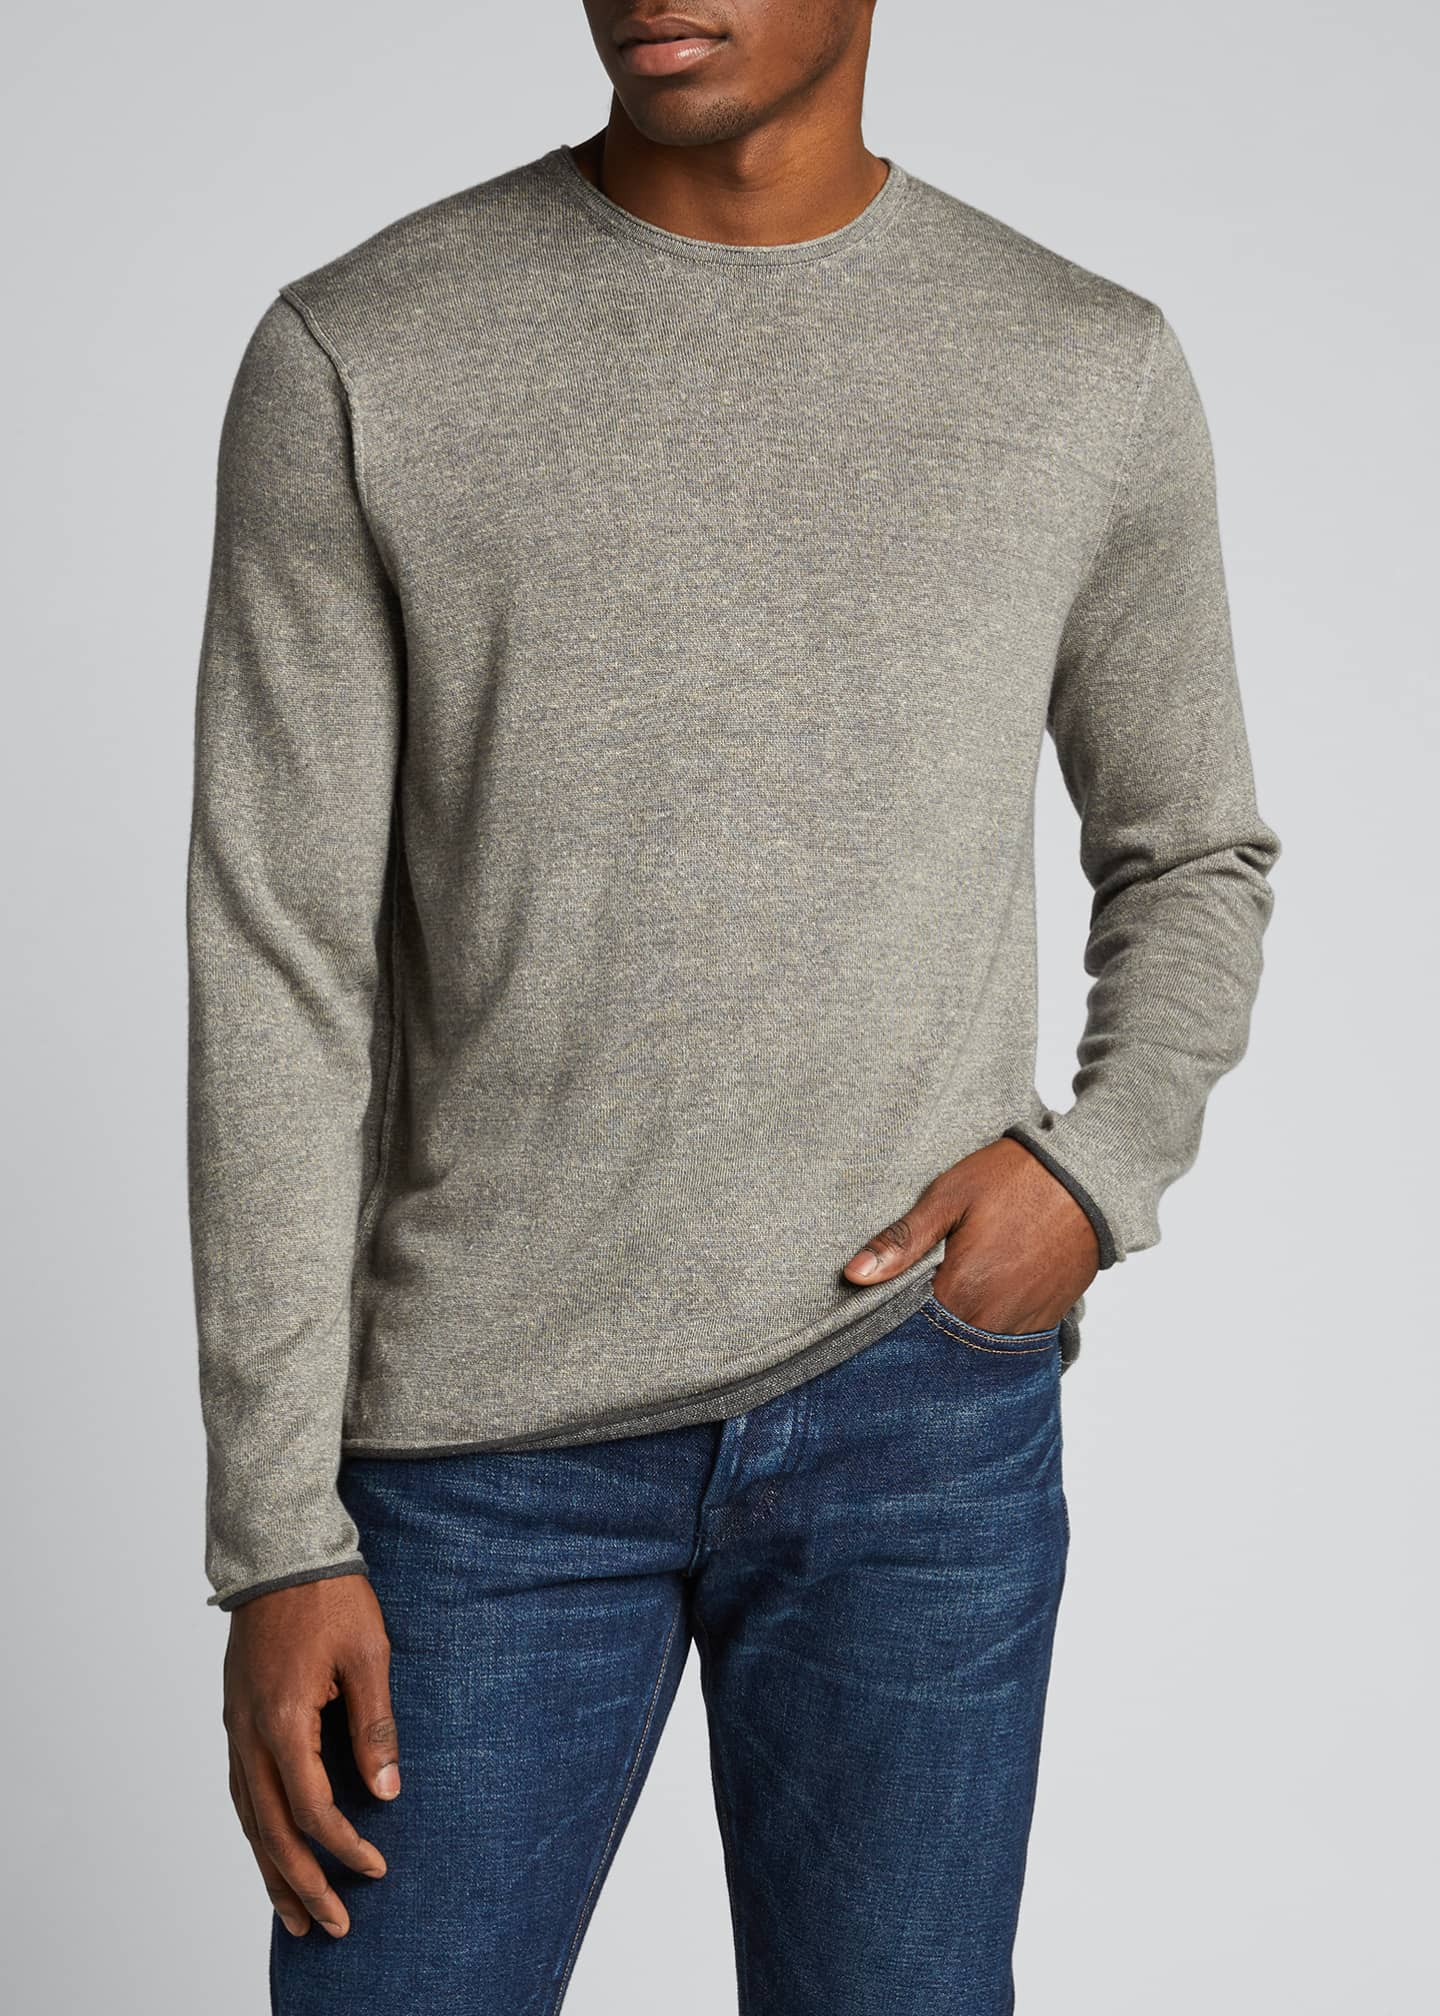 Image 3 of 5: Men's Trent Extrafine Crewneck Sweater